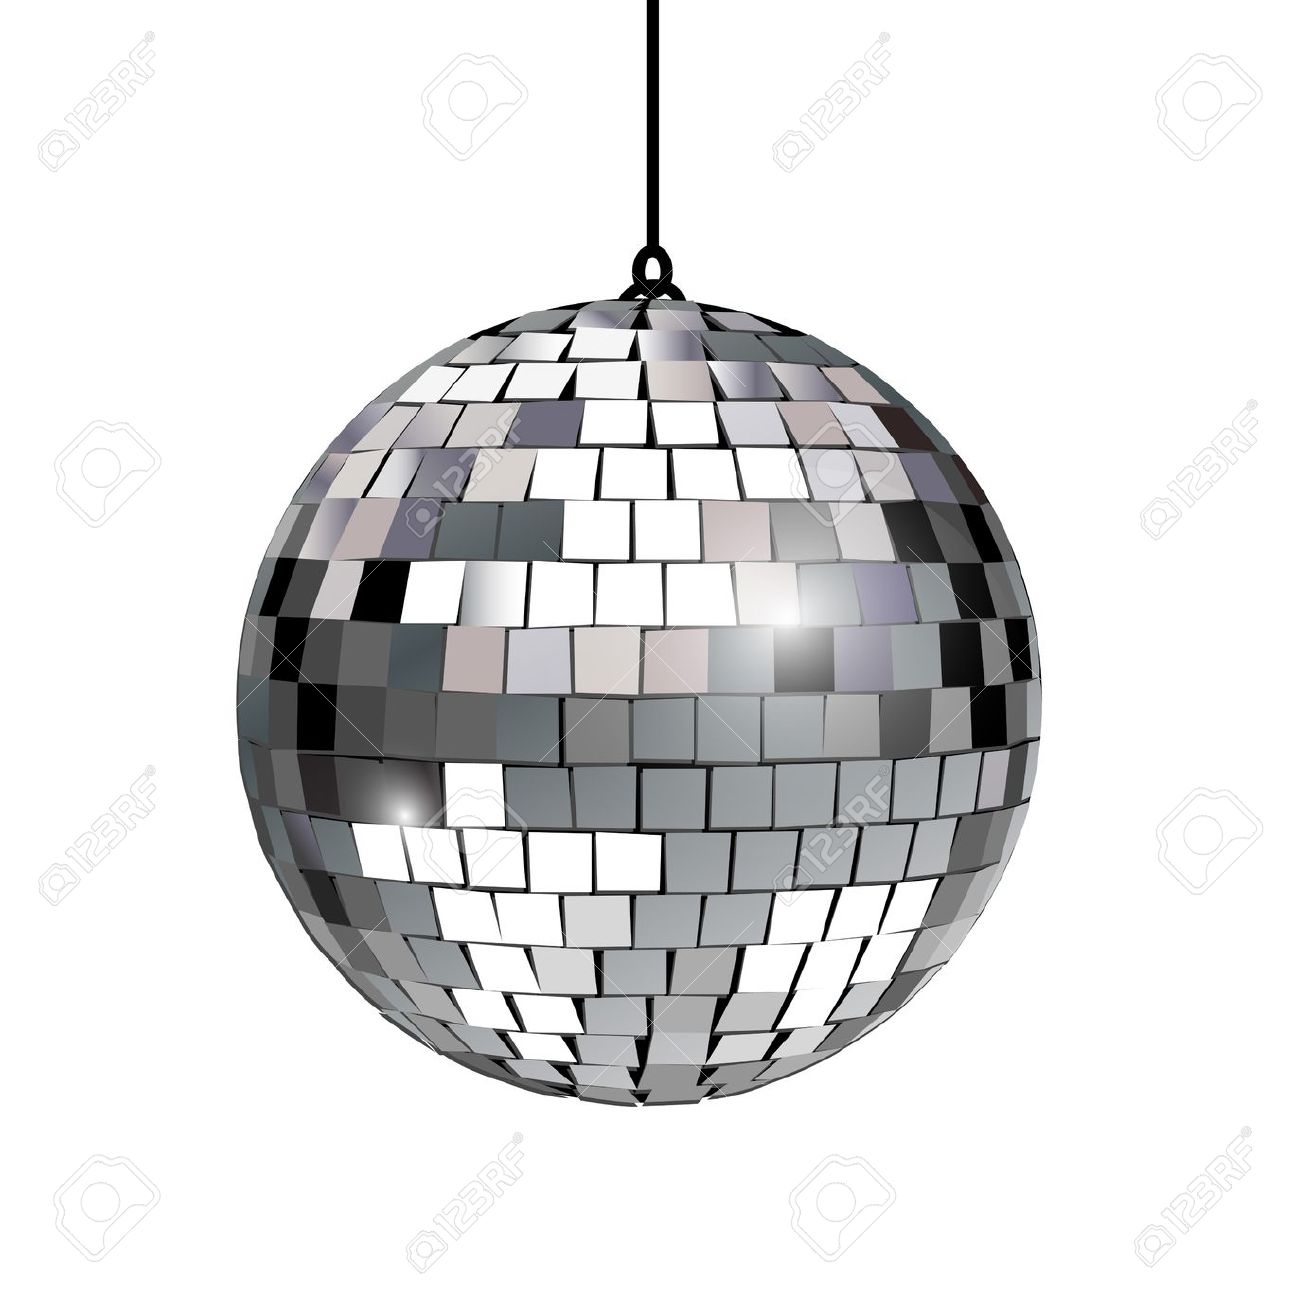 Mirror ball clipart.